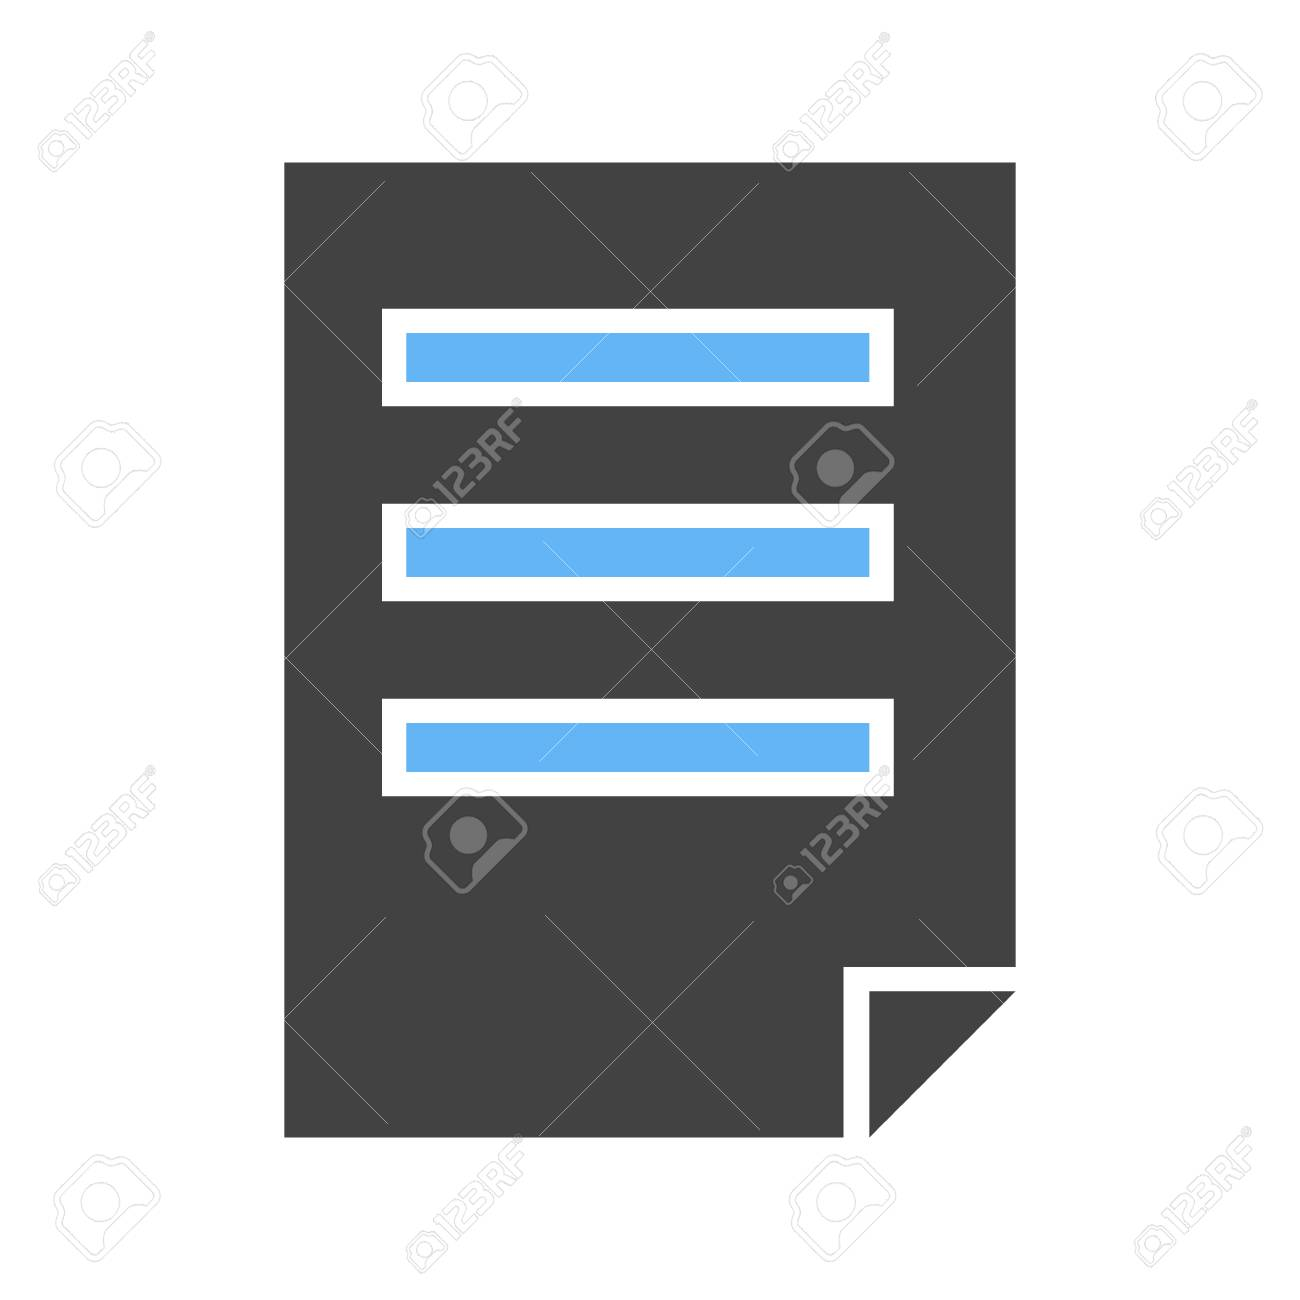 File, document, pdf icon vector image Can also be used for user